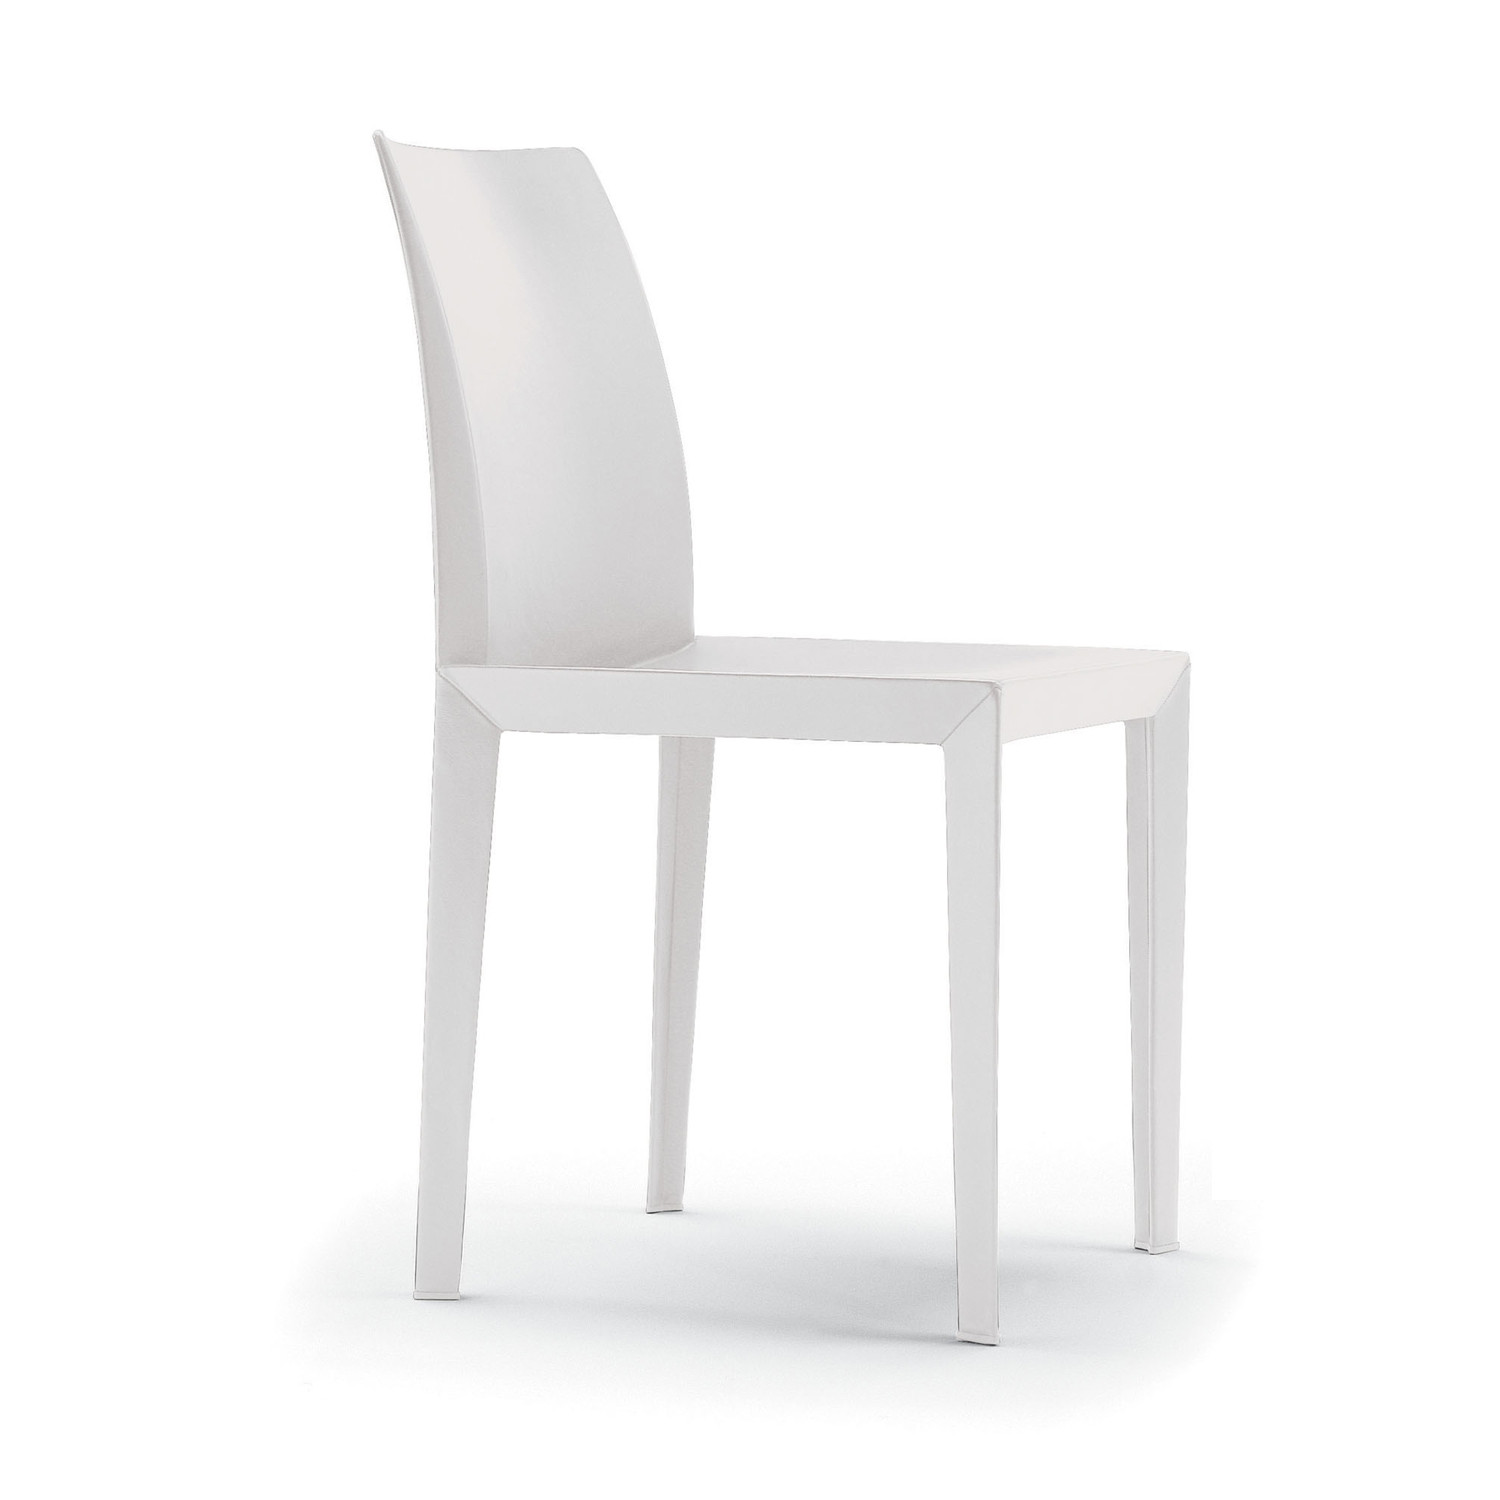 Lola Designer Dining Chairs